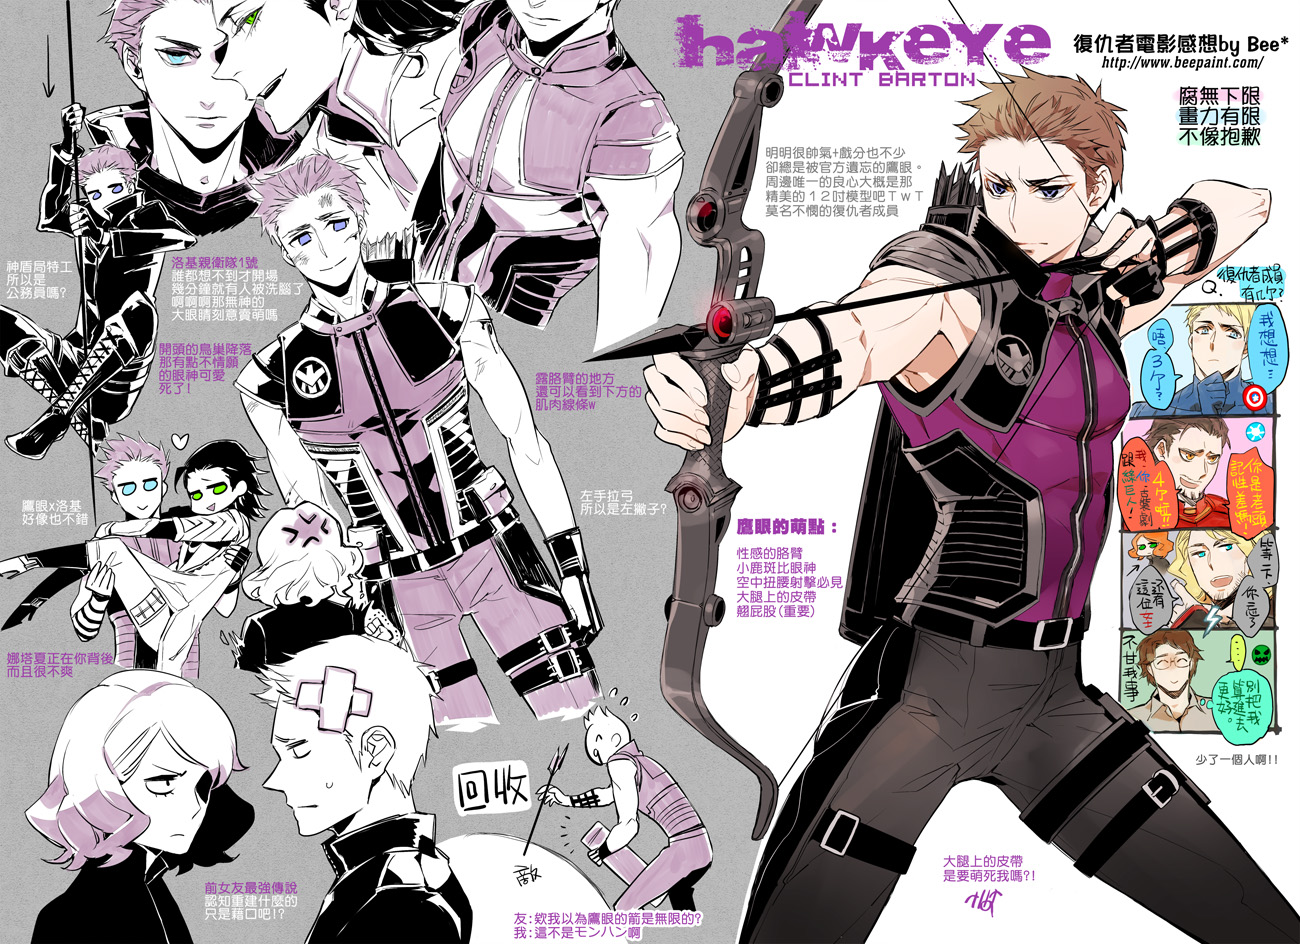 Hawkeye Character Download Image